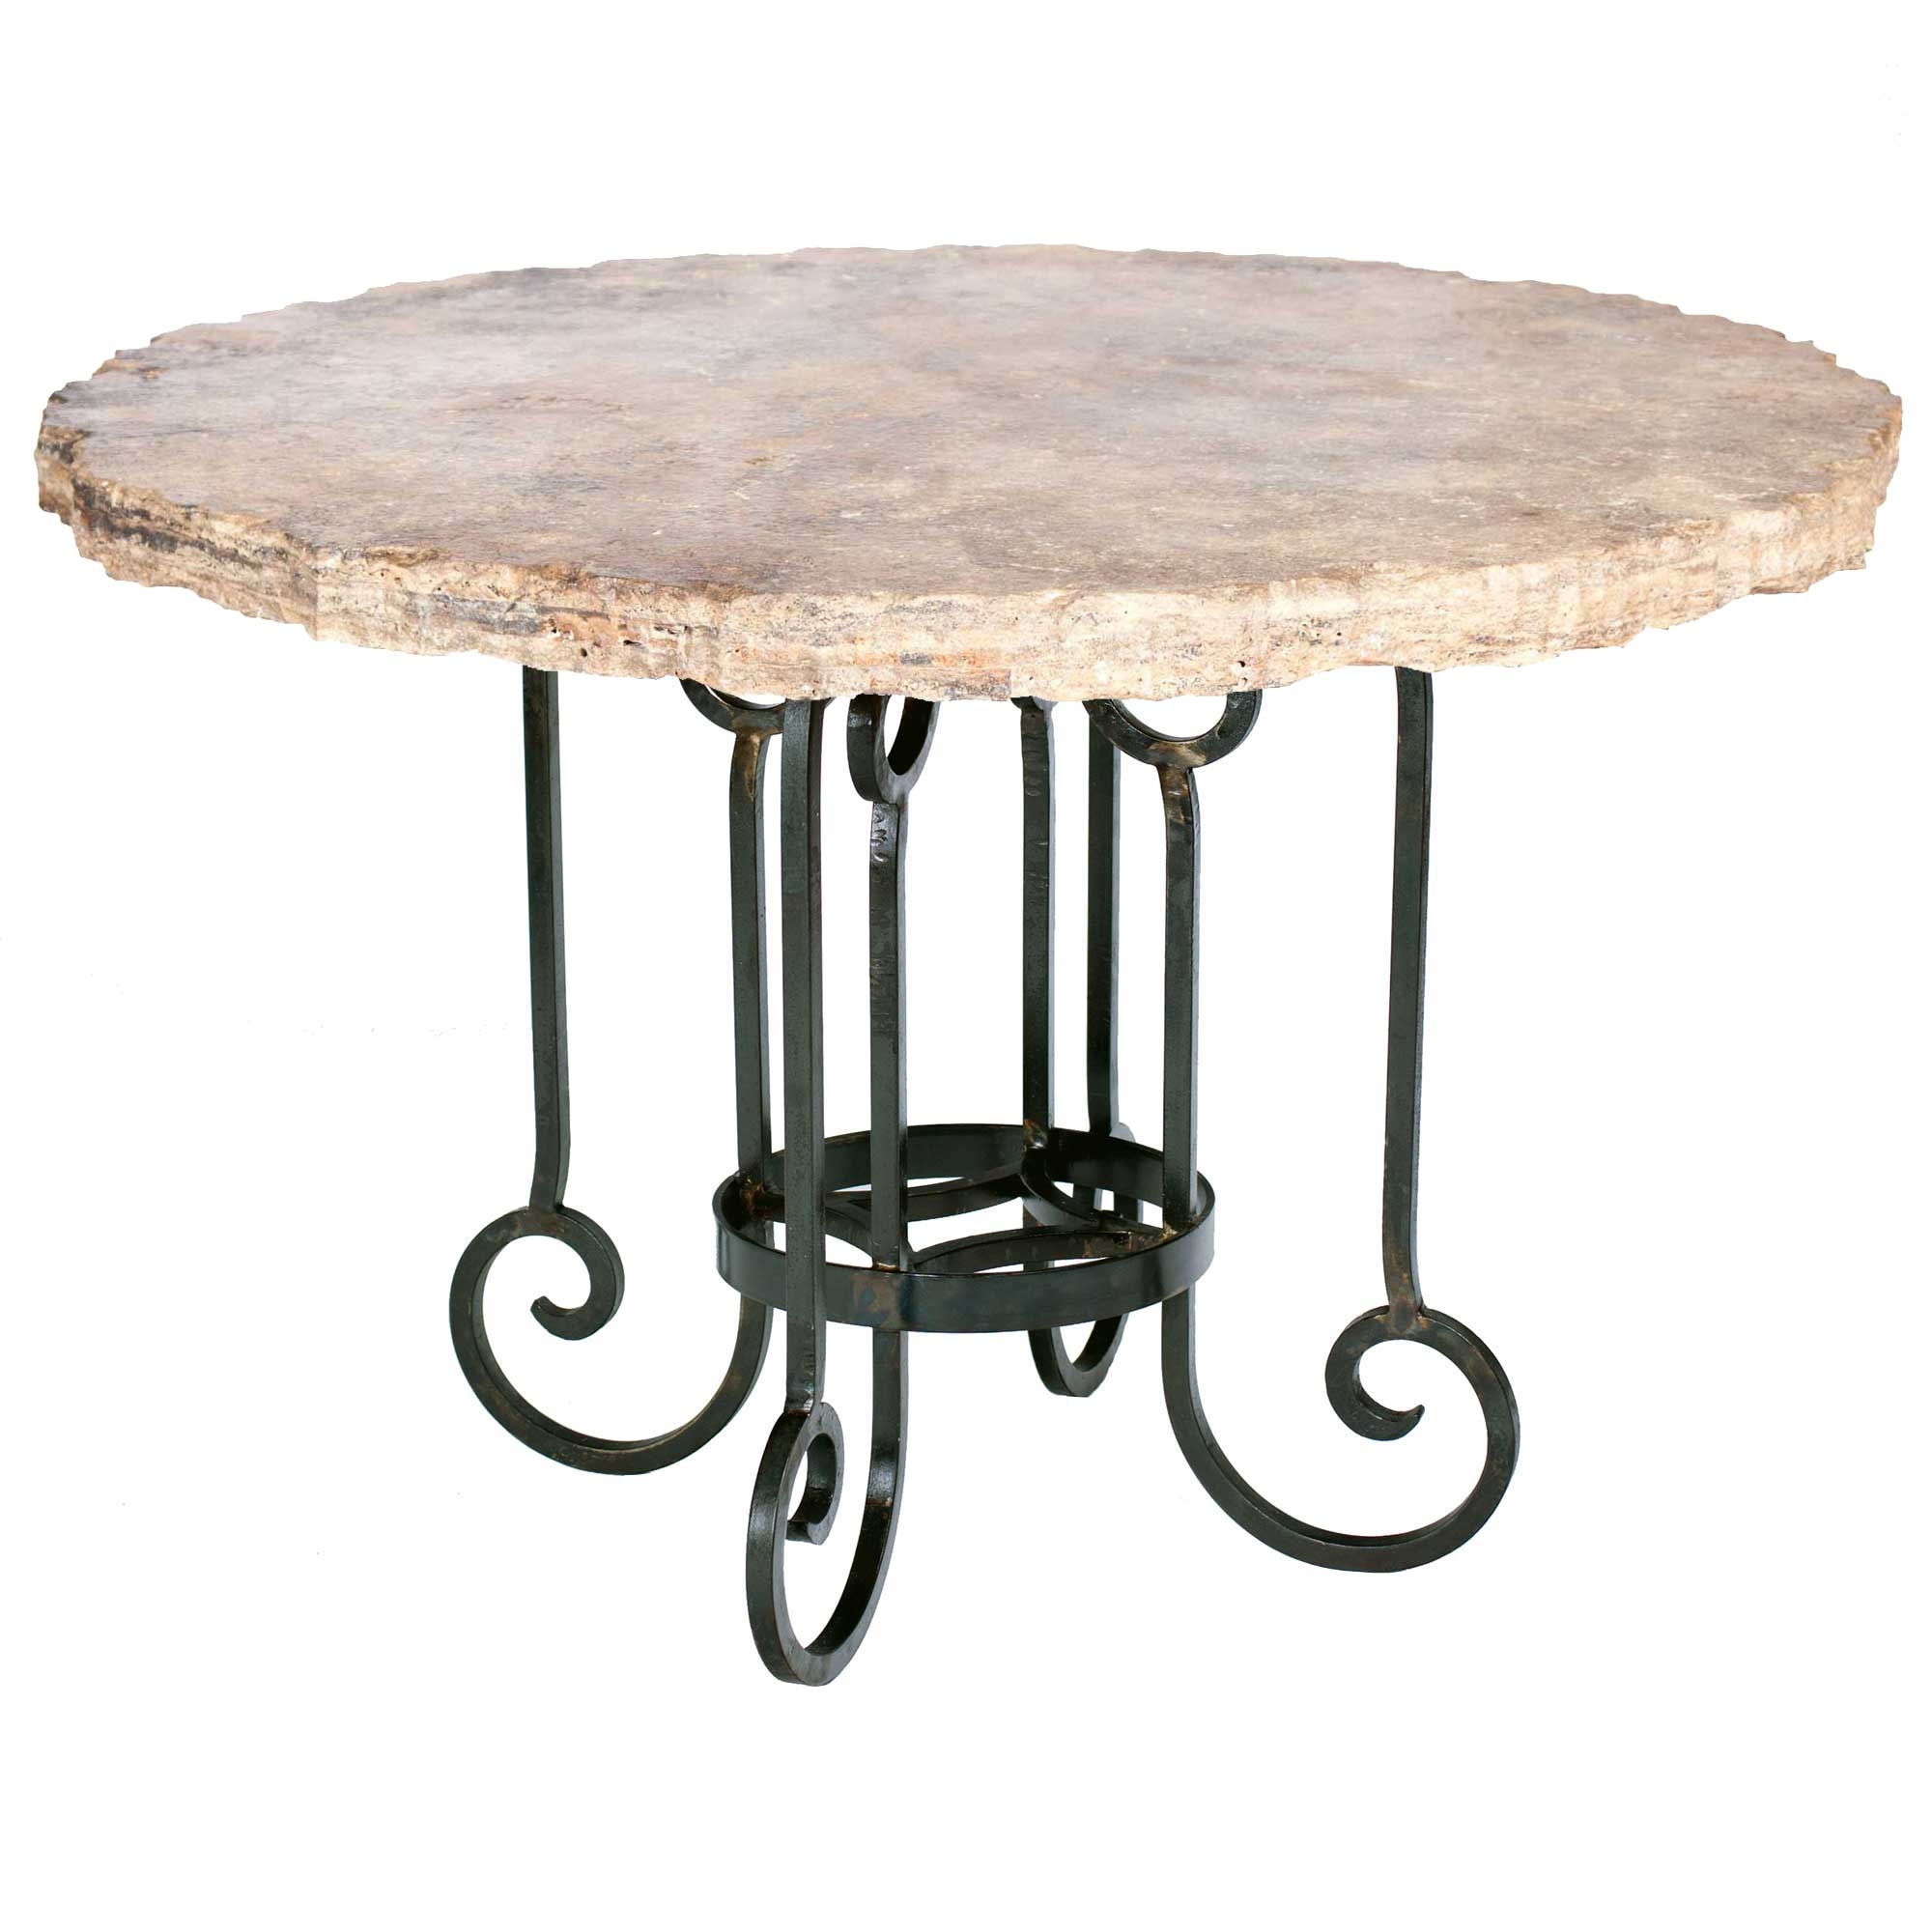 Round marble table - Pictured Here Is The Curled Leg Round Dining Table With Wrought Iron Base And 60